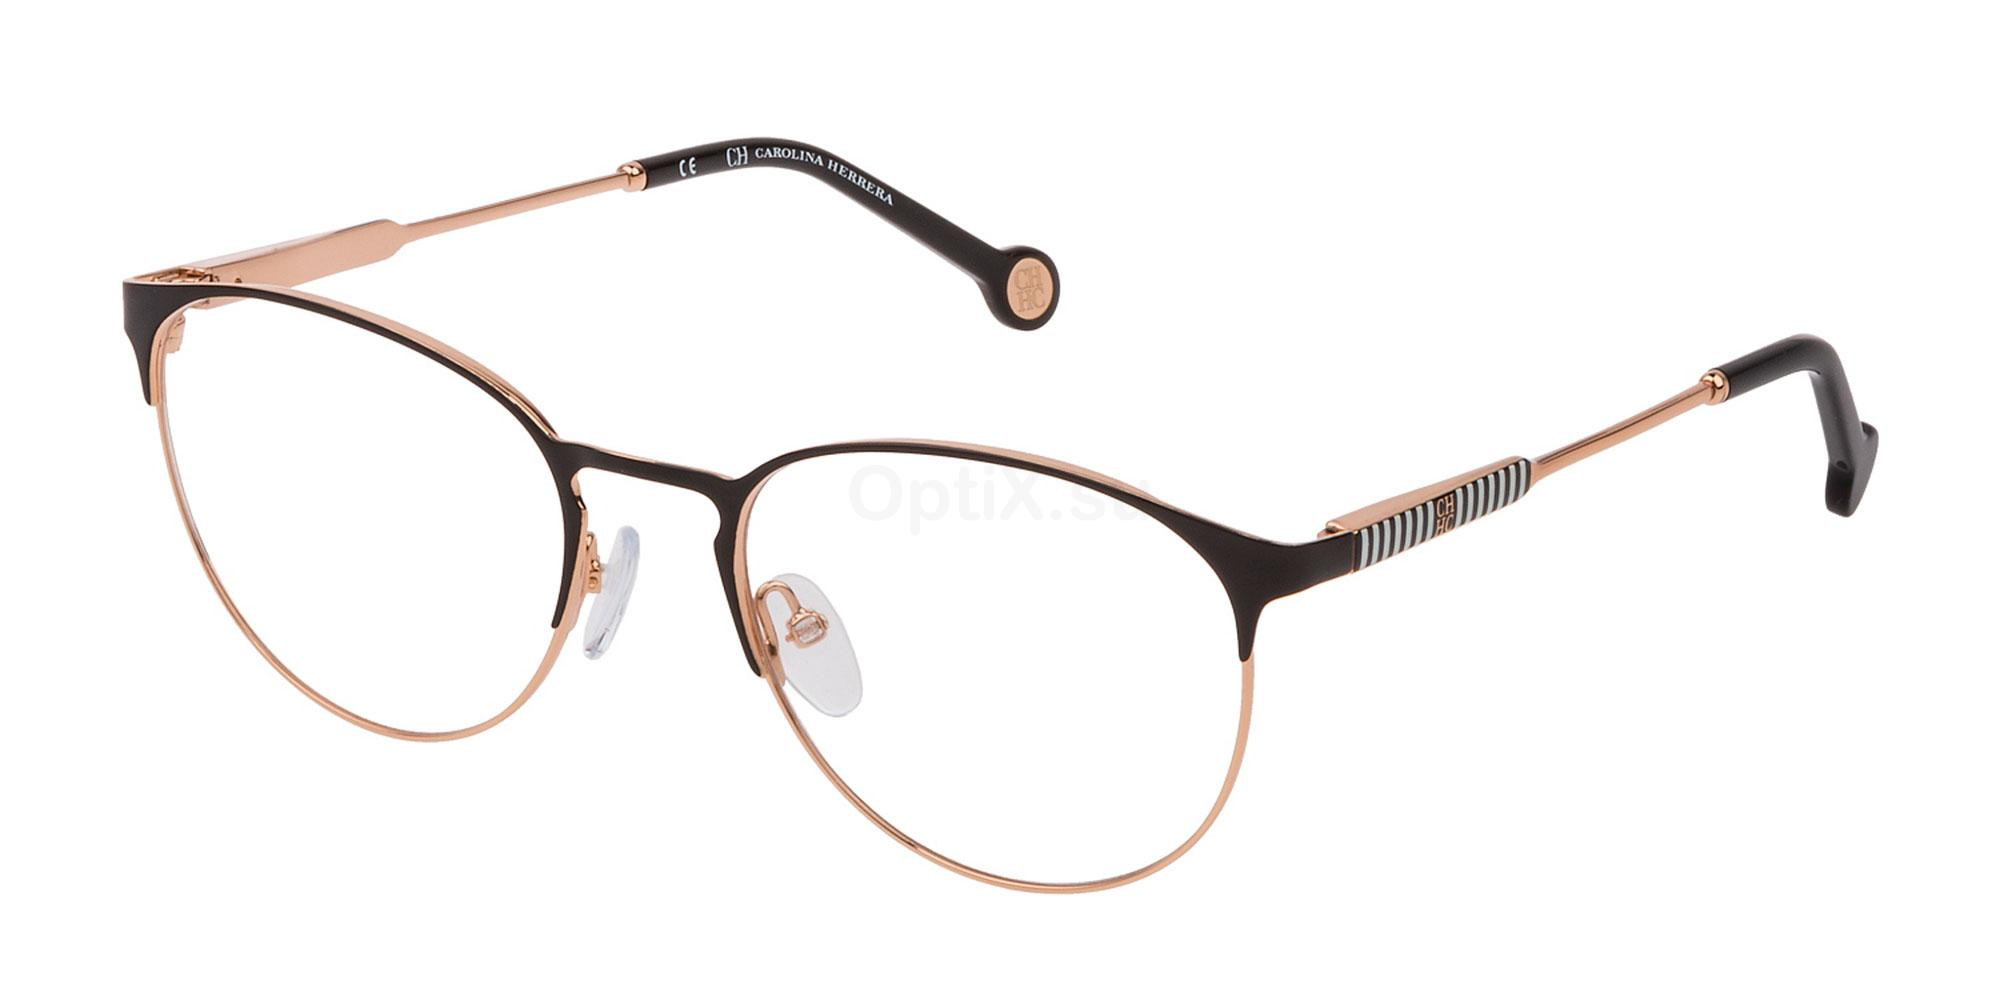 0301 VHE136 Glasses, CH Carolina Herrera